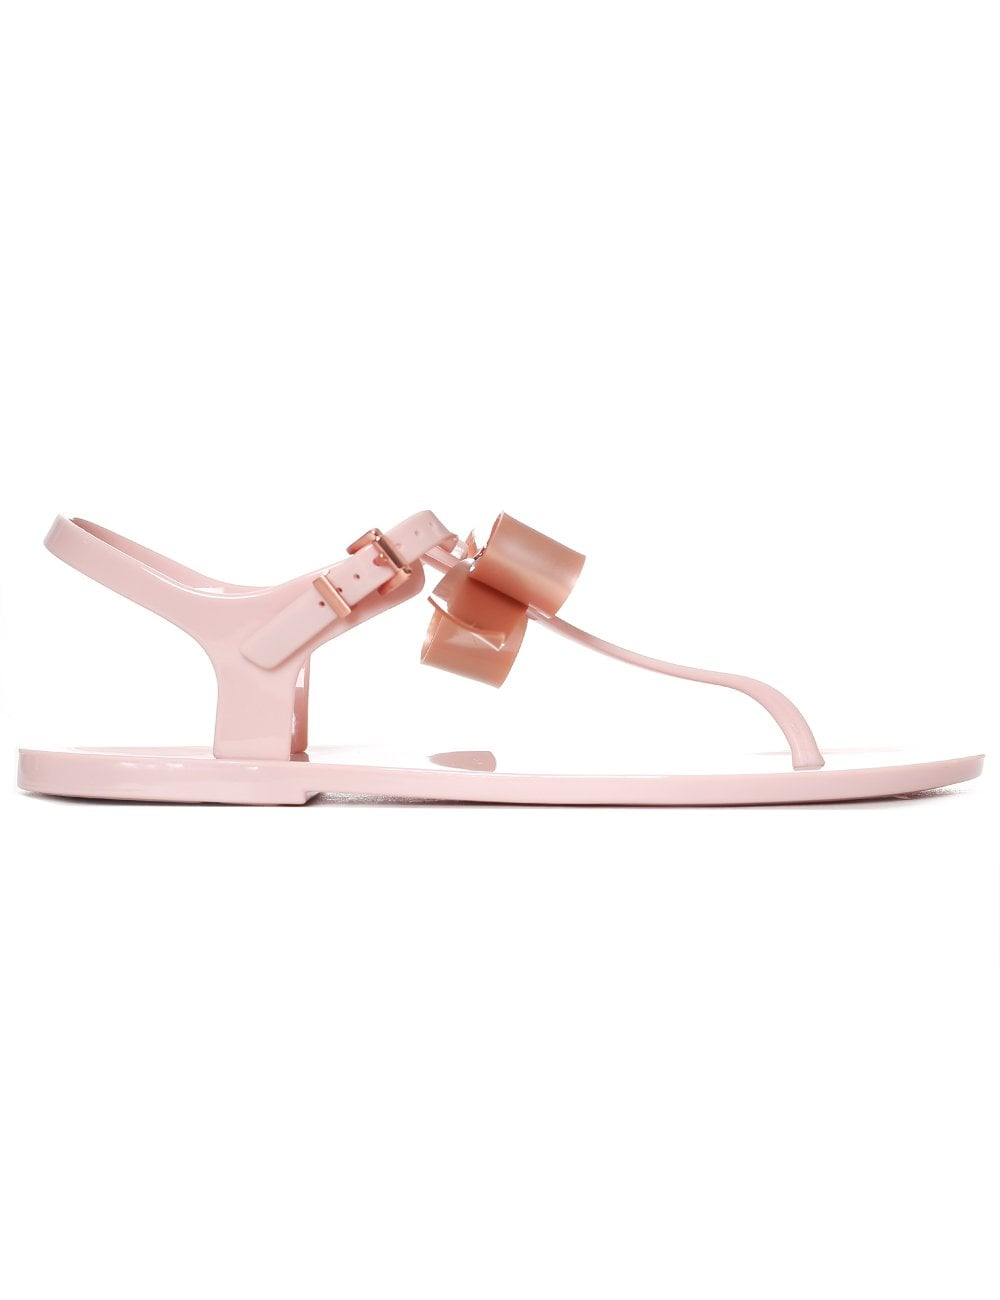 ead1e0a40 Ted Baker Women s Teiya Bow Detail Jelly Sandals